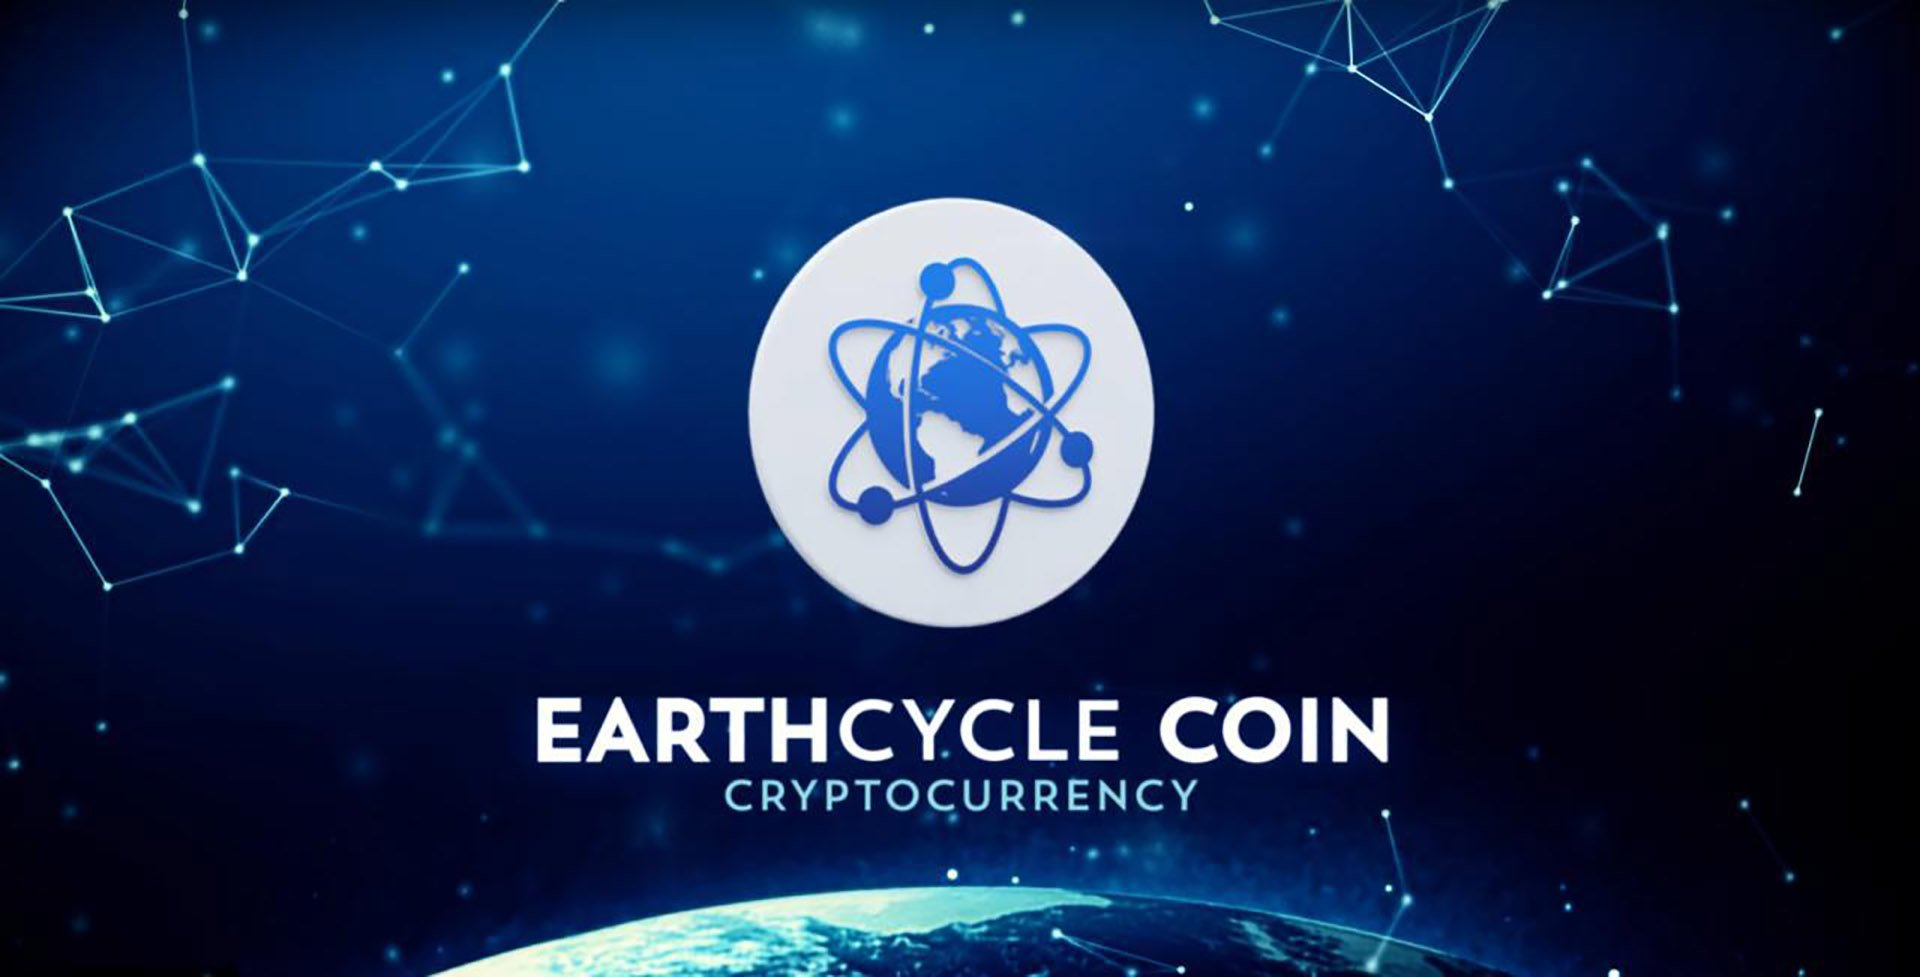 EarthCycle (ECE) Coin Powers a Decentralized Funding Pool Backed by Real World Business Revenues